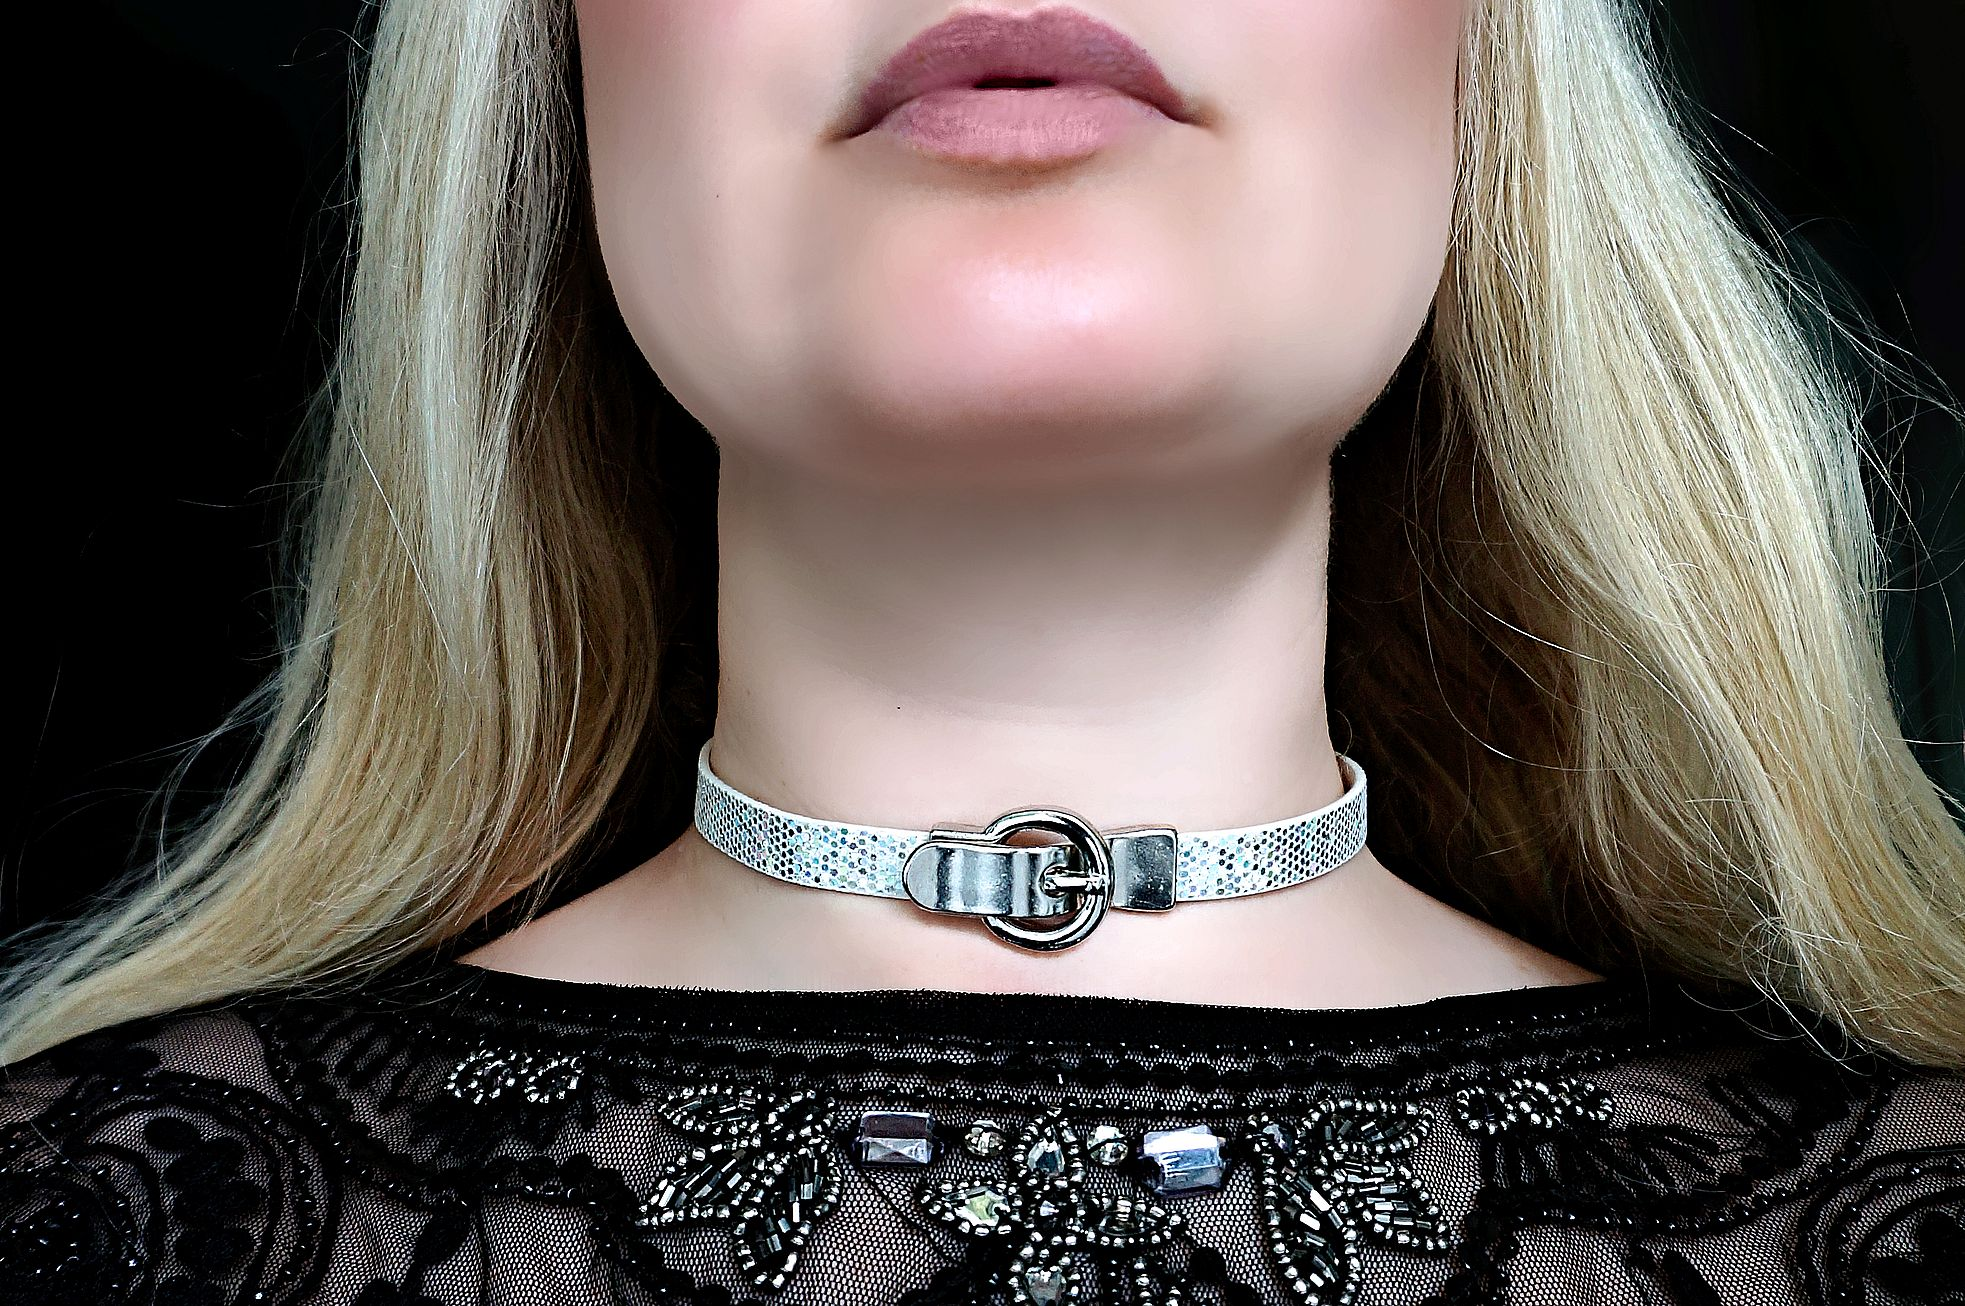 Submissive collar choker necklace lock